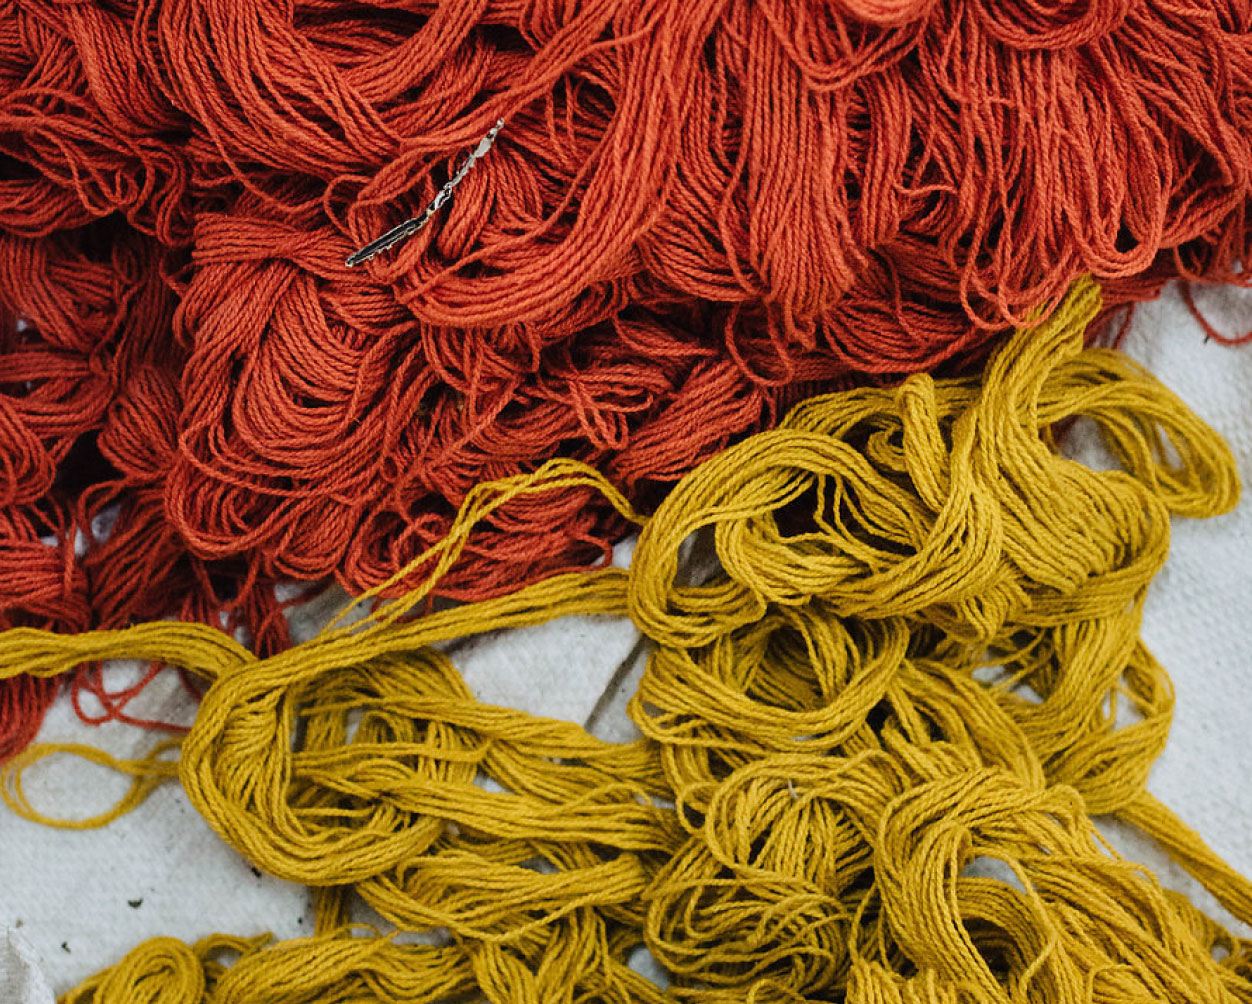 A close-up picture of orange and yellow thread.